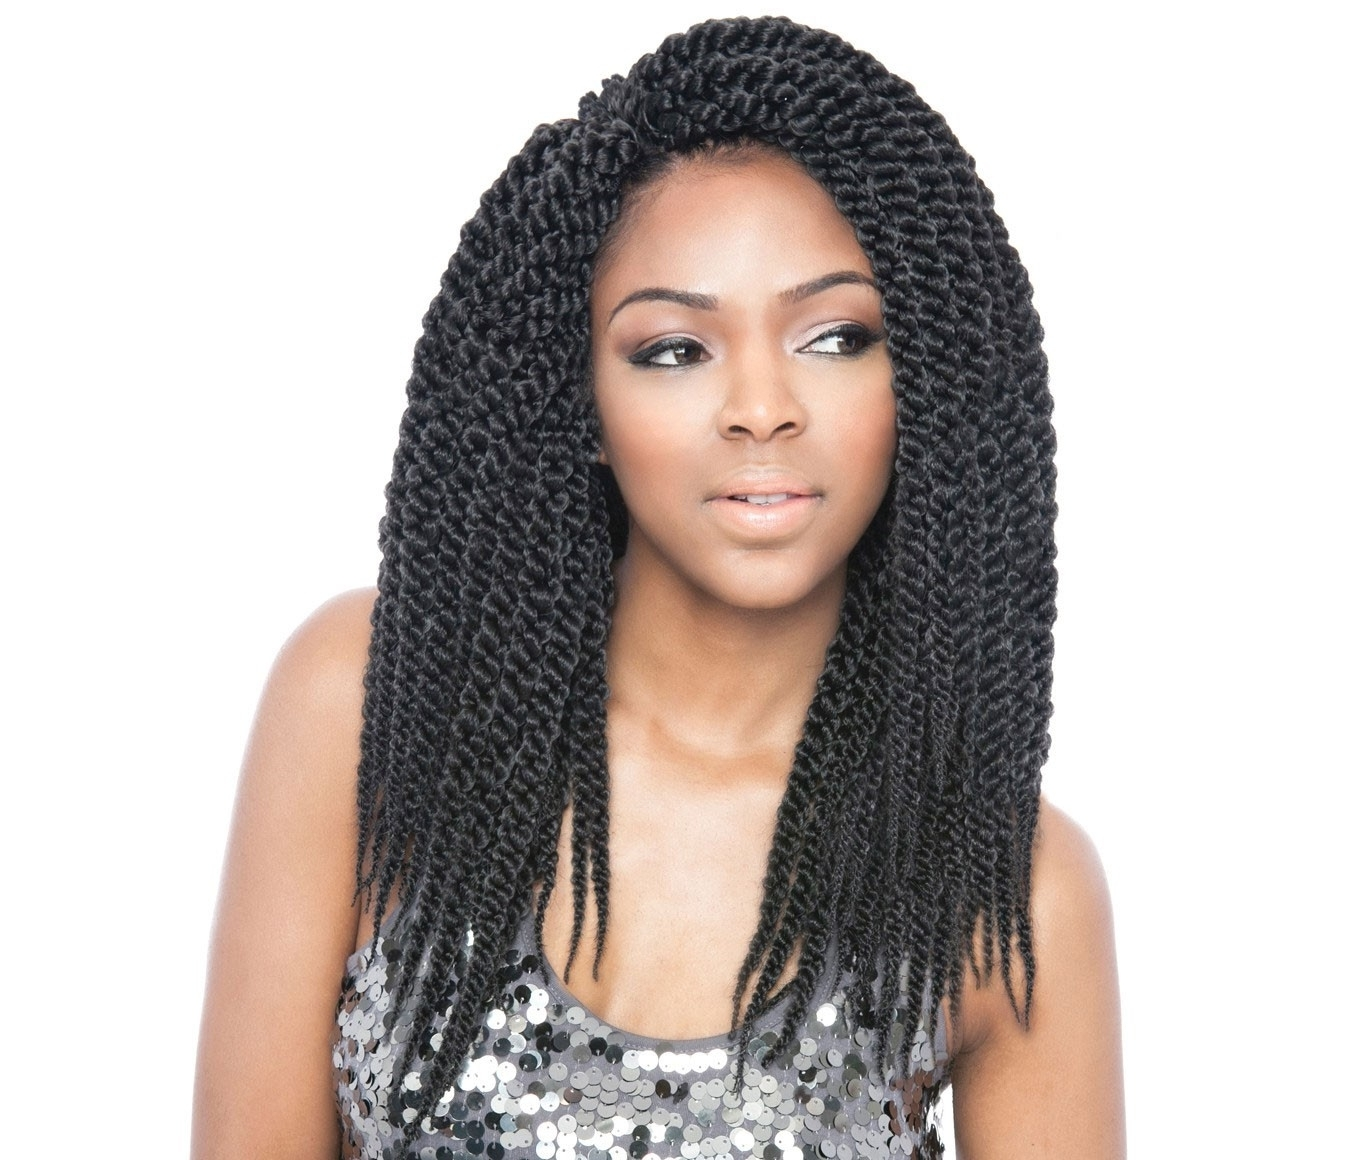 2018 Braided Hairstyles With Crochet In Isis Afri Naptural Crochet Braid Cubic Twist 14 Inch (View 4 of 15)